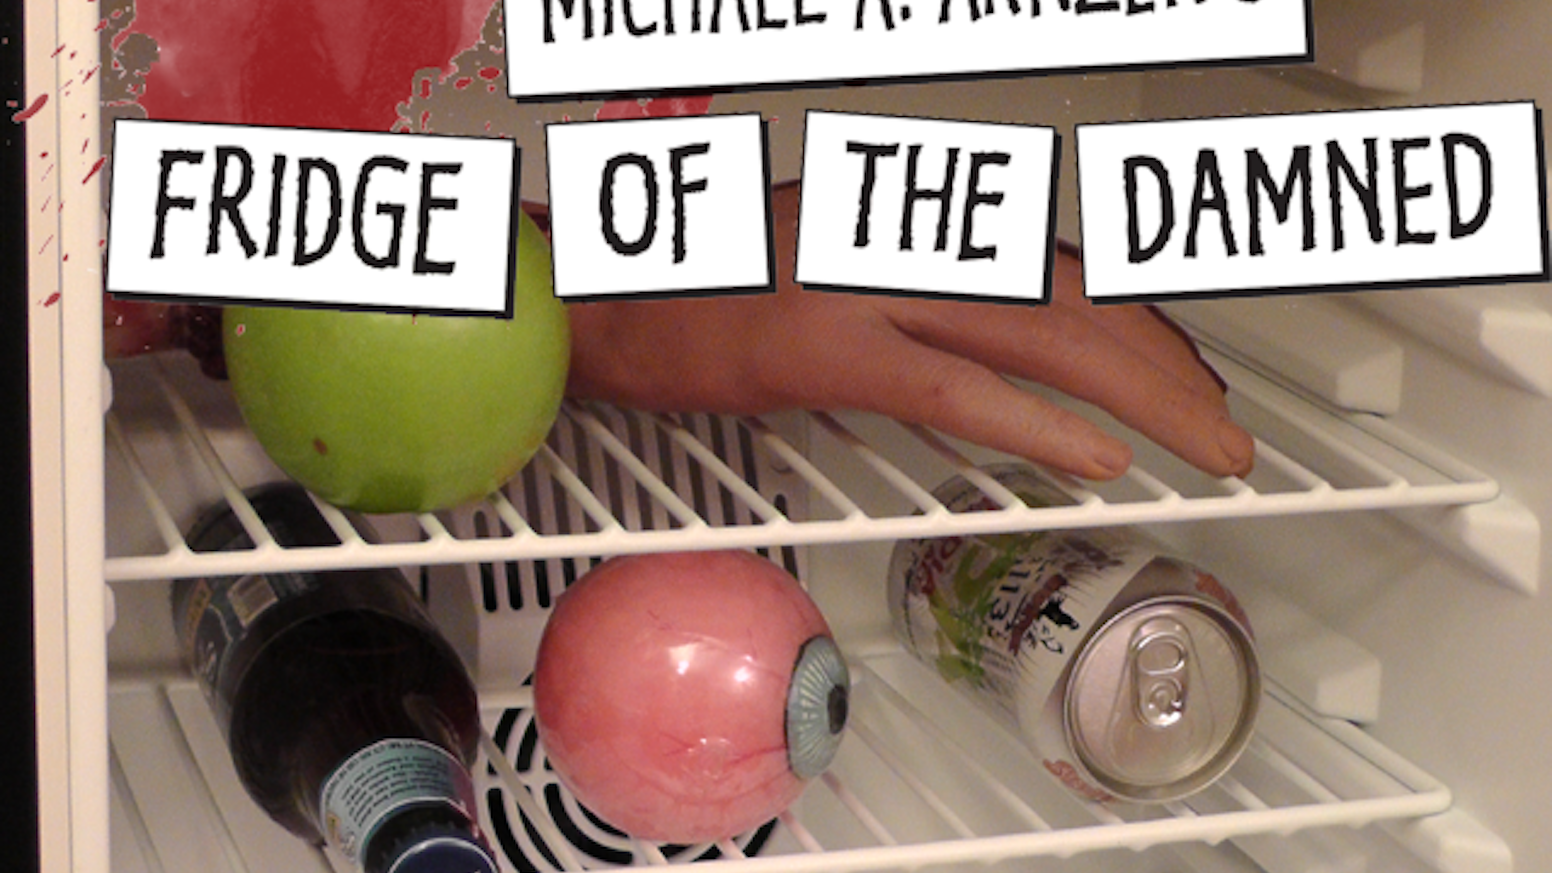 Raw Dog Screaming Press presents Michael A. Arnzen's Fridge of the Damned. It's the creepiest magnetic word kit you've ever seen!